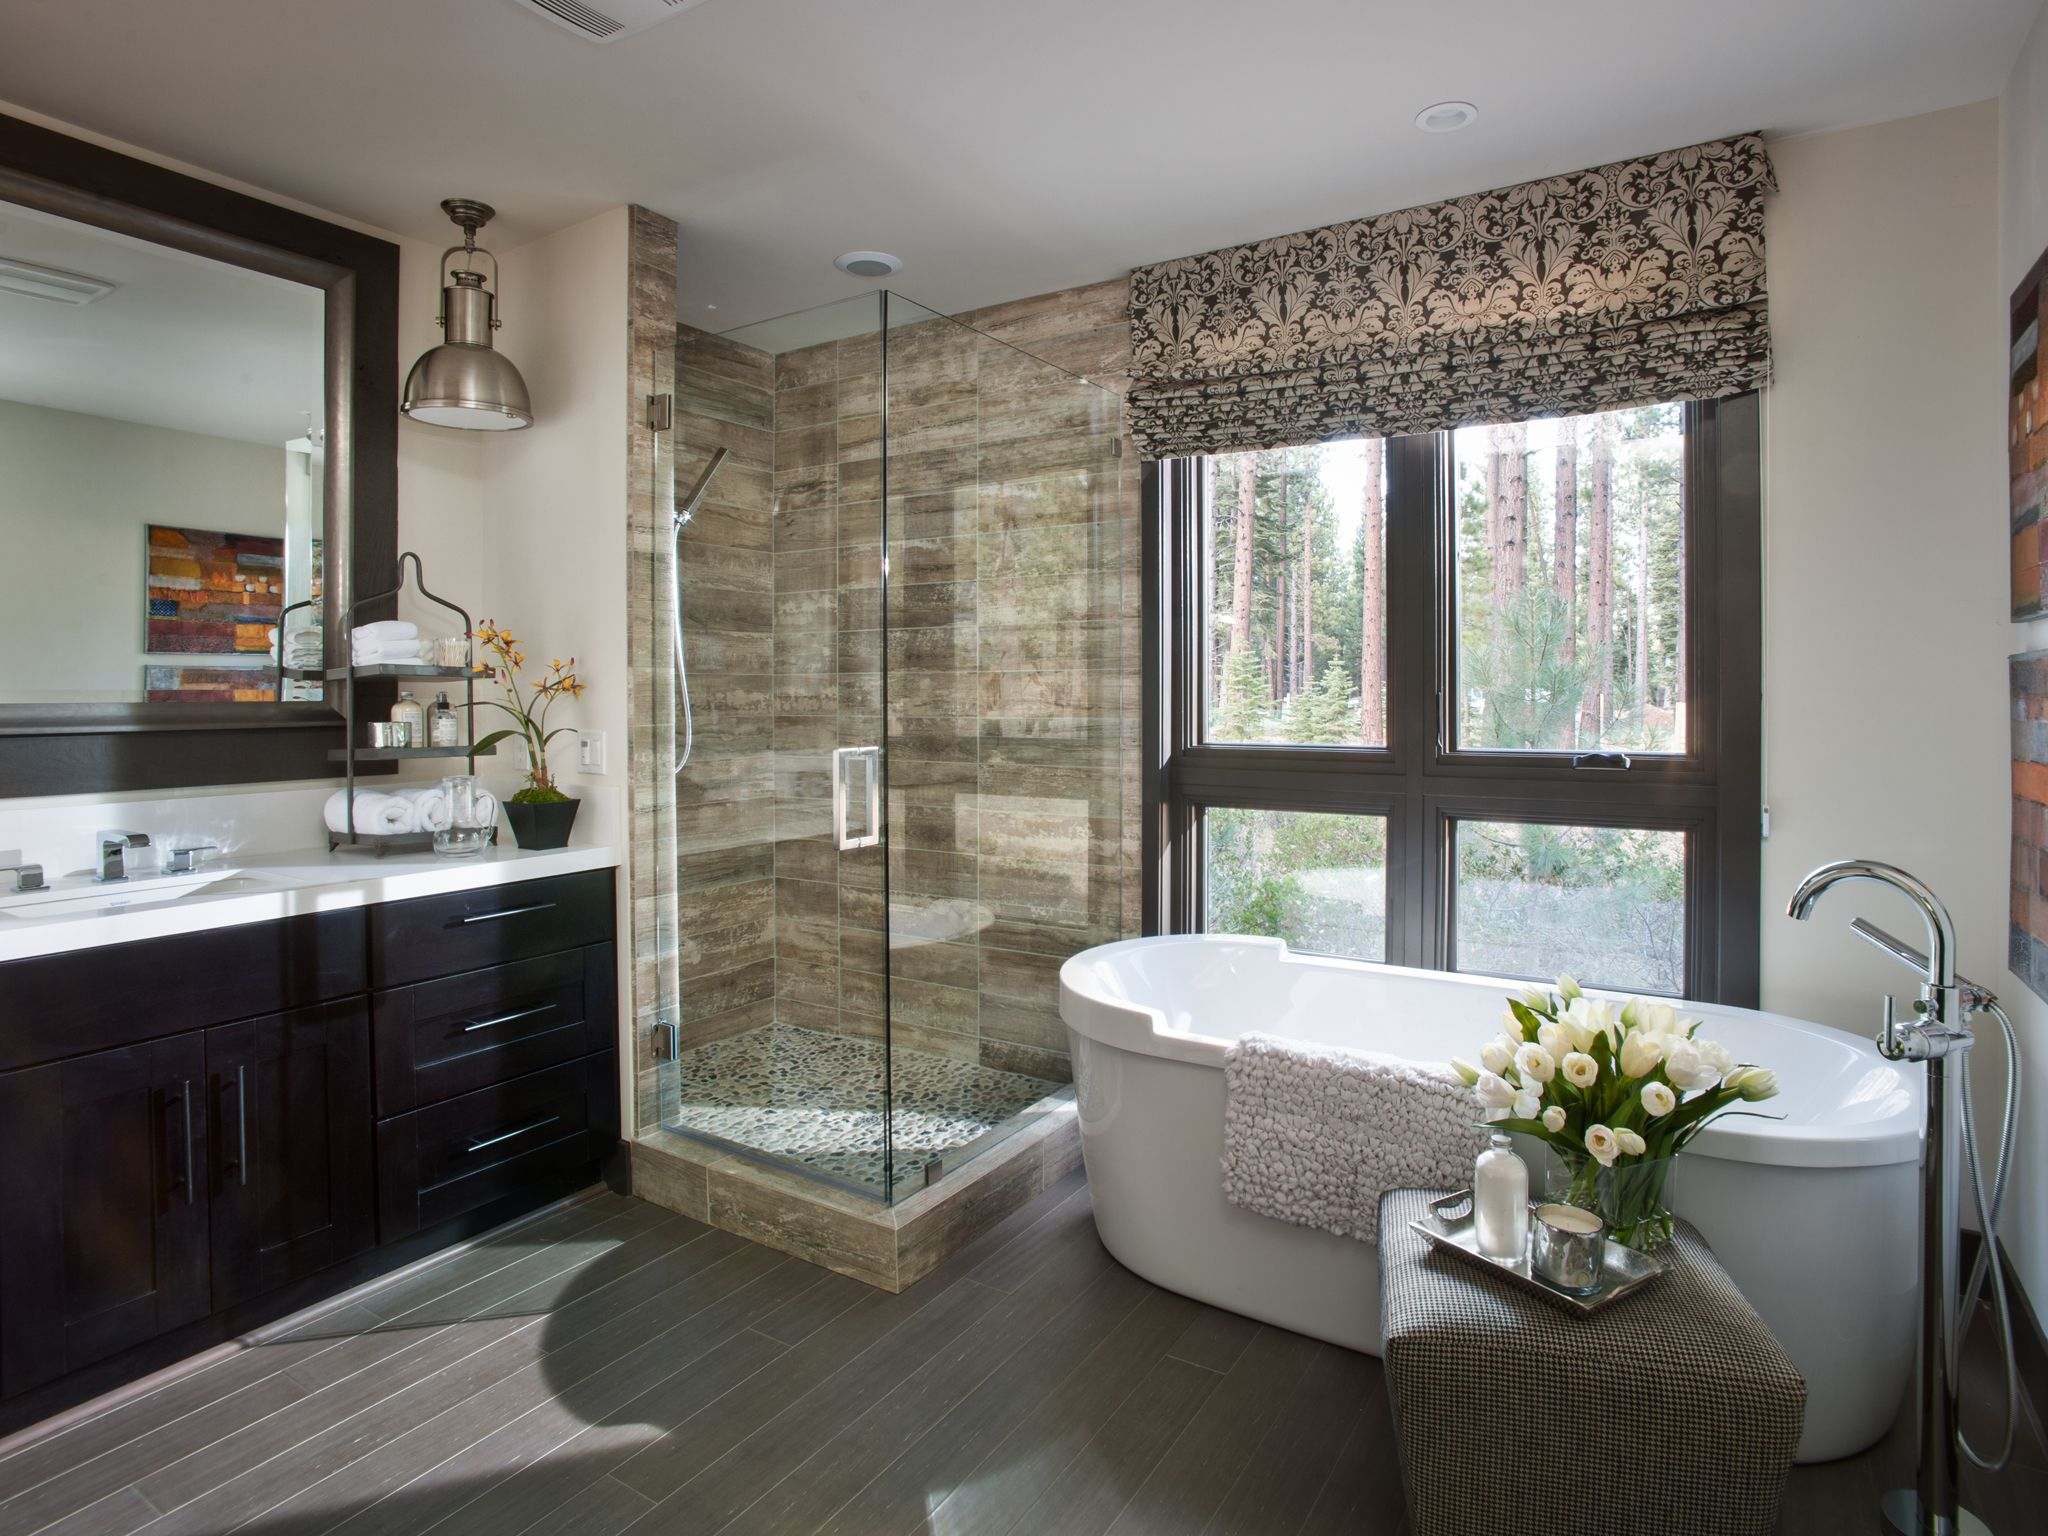 Hgtv bathroom ideas - Bath